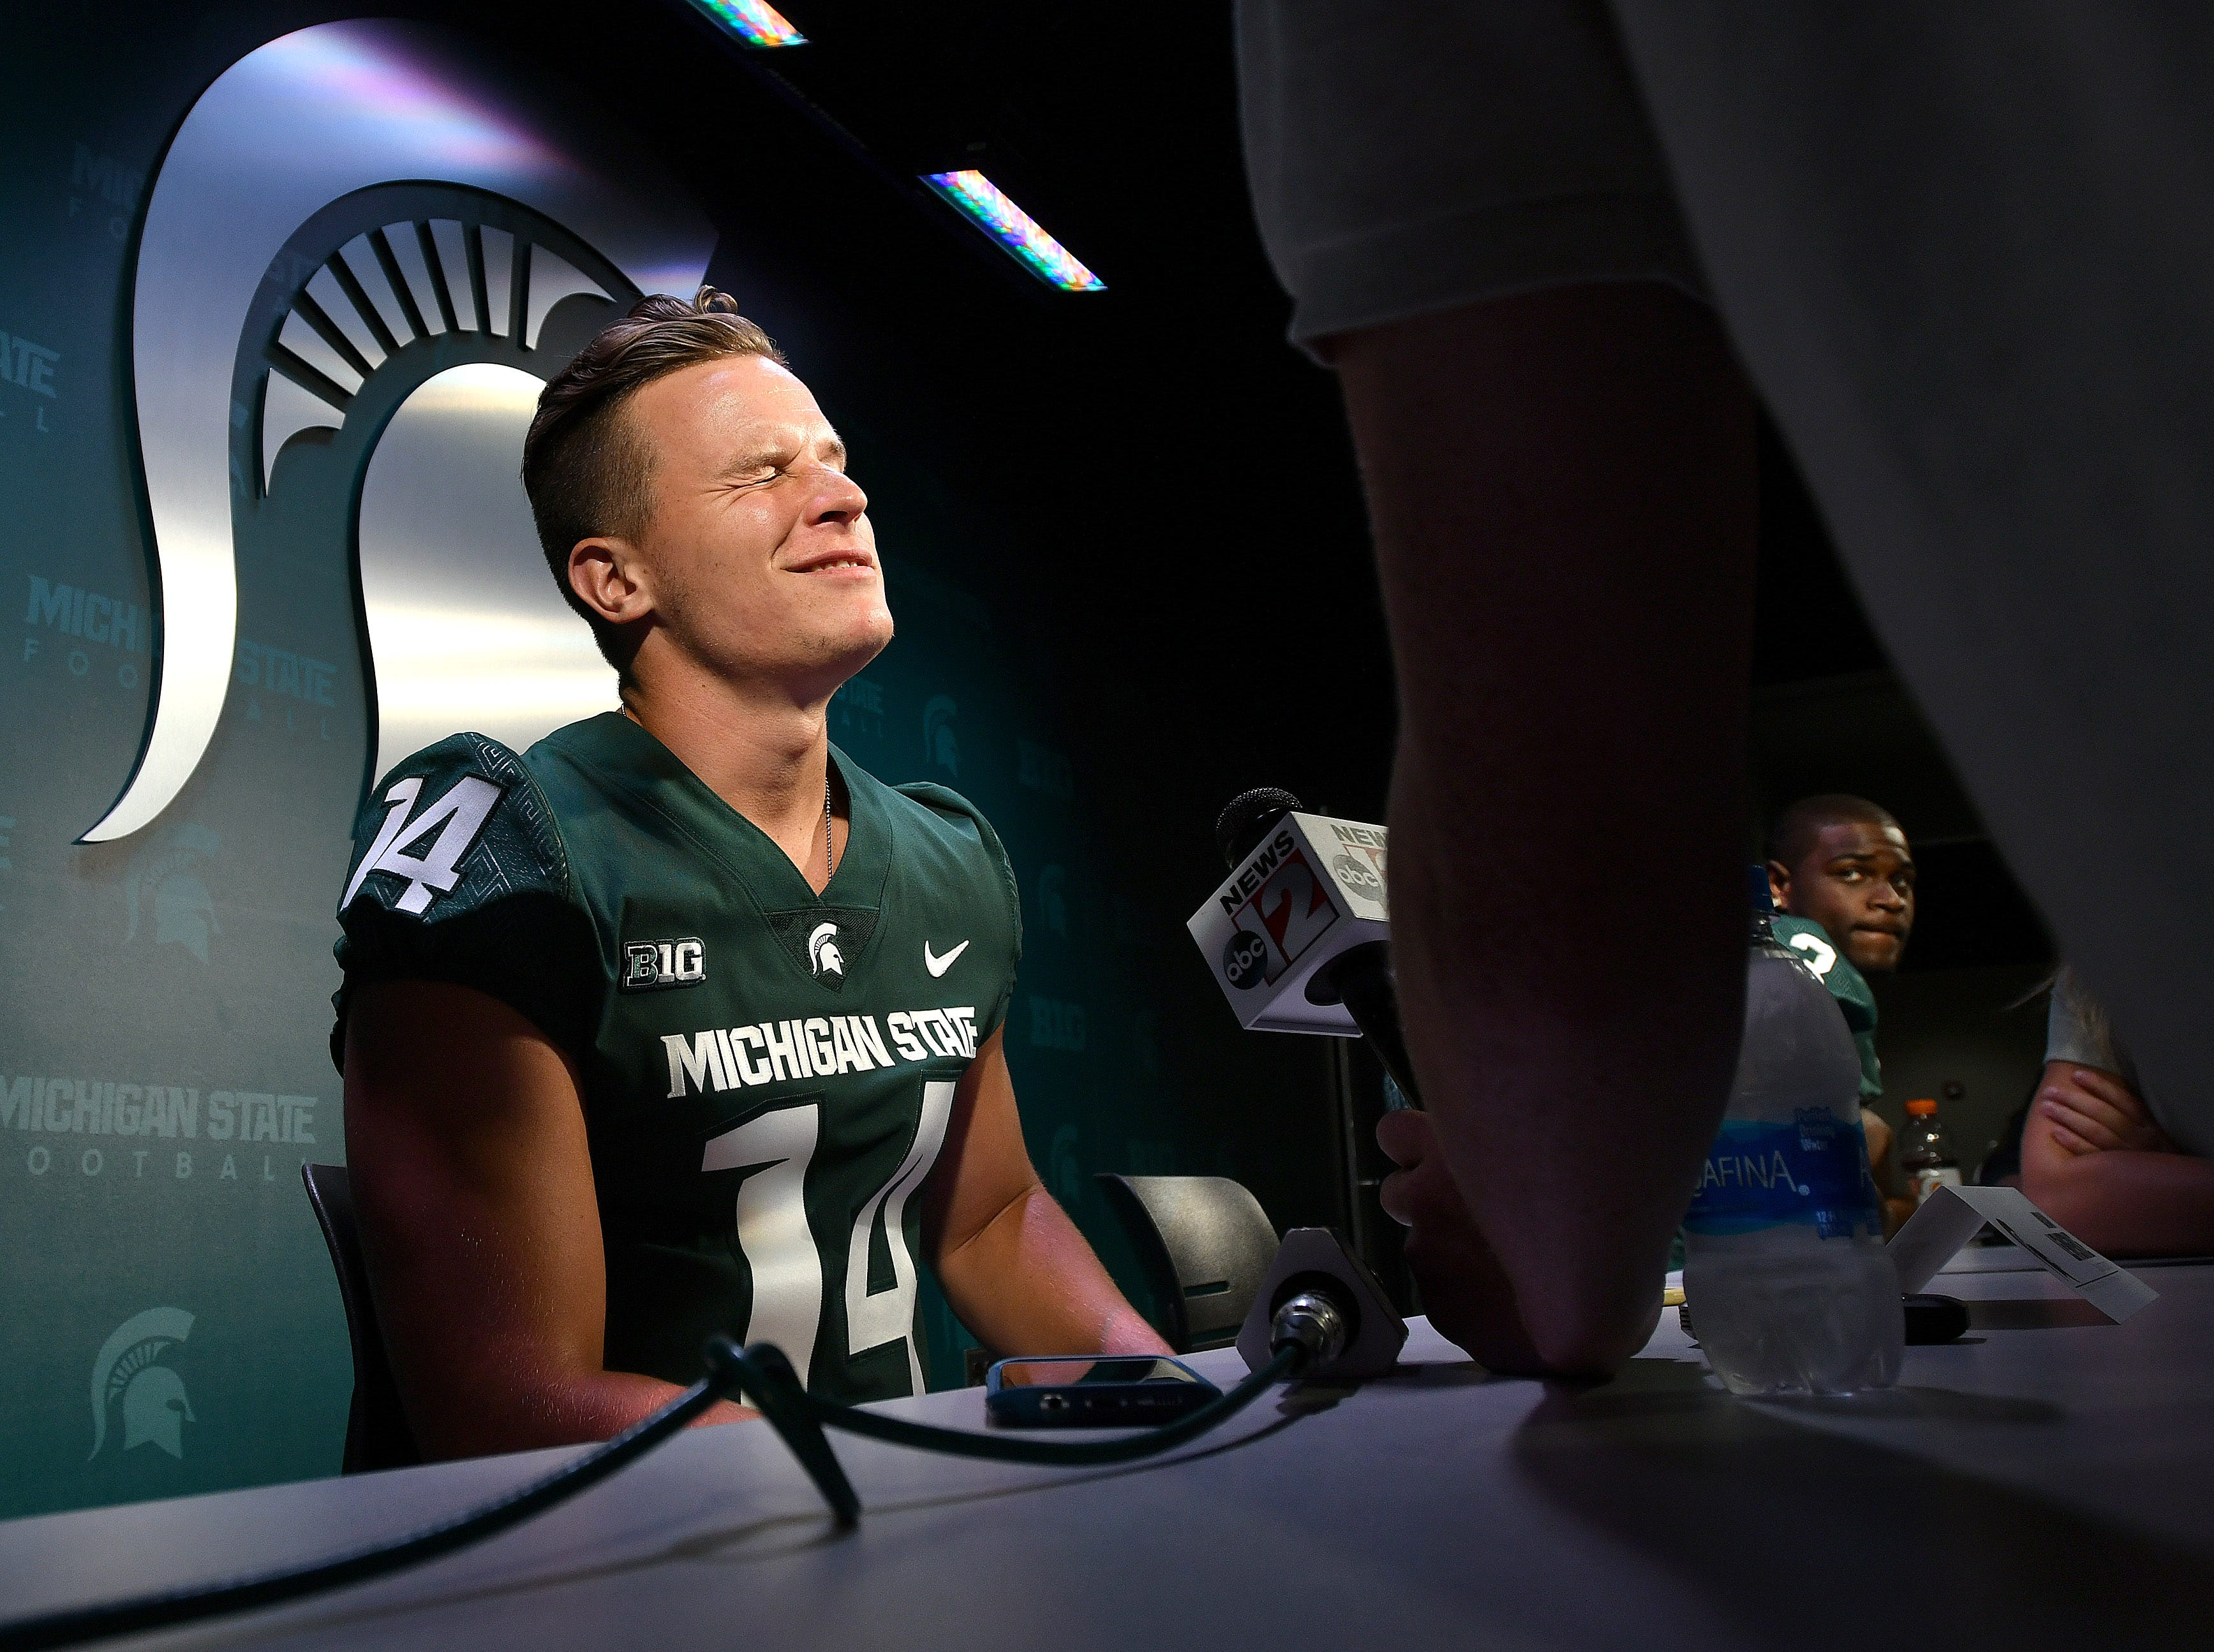 Everything was going fine for quarterback Brian Lewerke until some reporter asked him about his golf game.